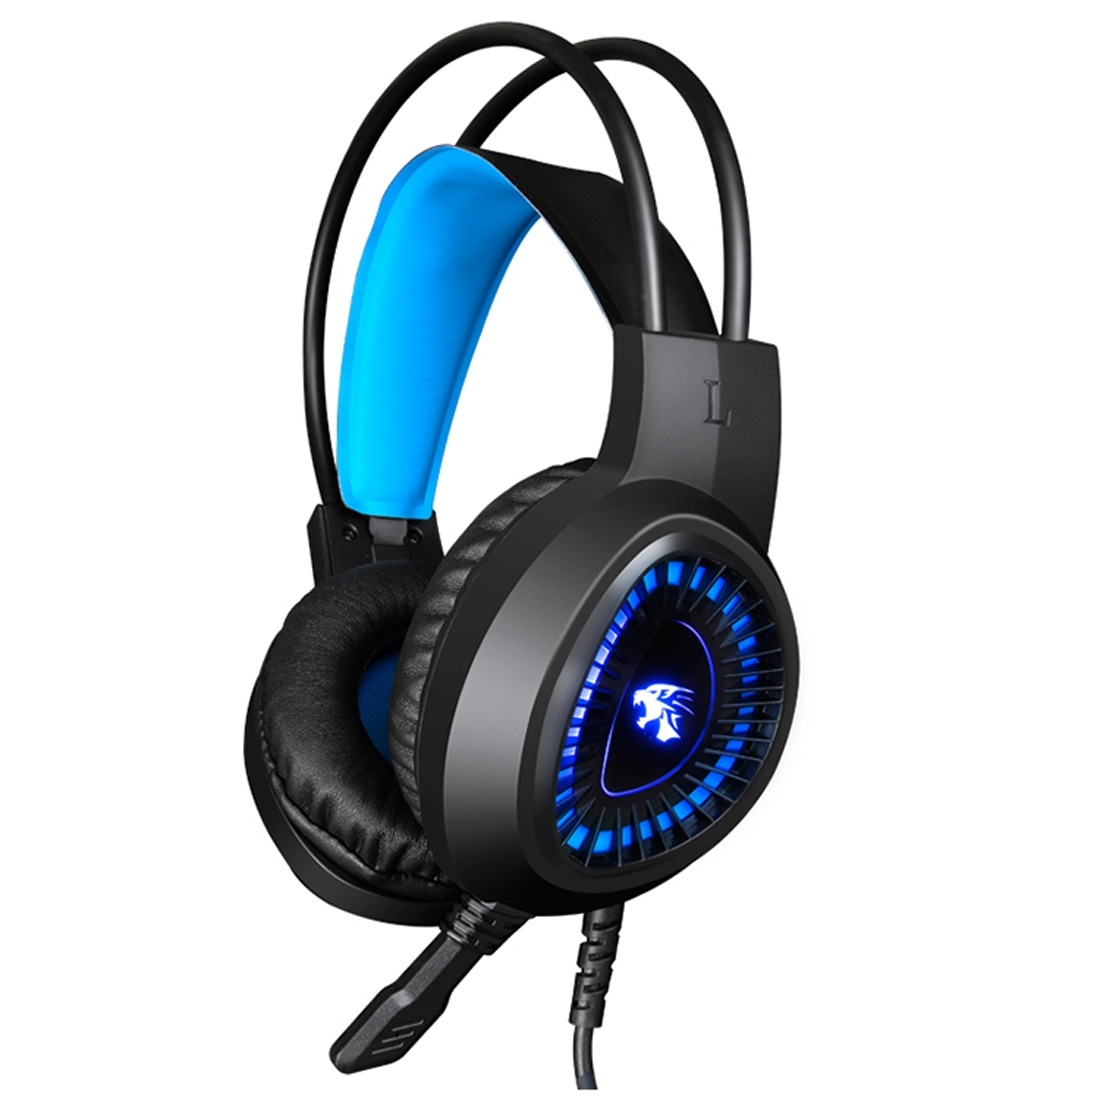 HAMTOD <strong>V1000</strong> Dual-3.5mm led light stereo pc gaming headphone player wired game headset(Blue)